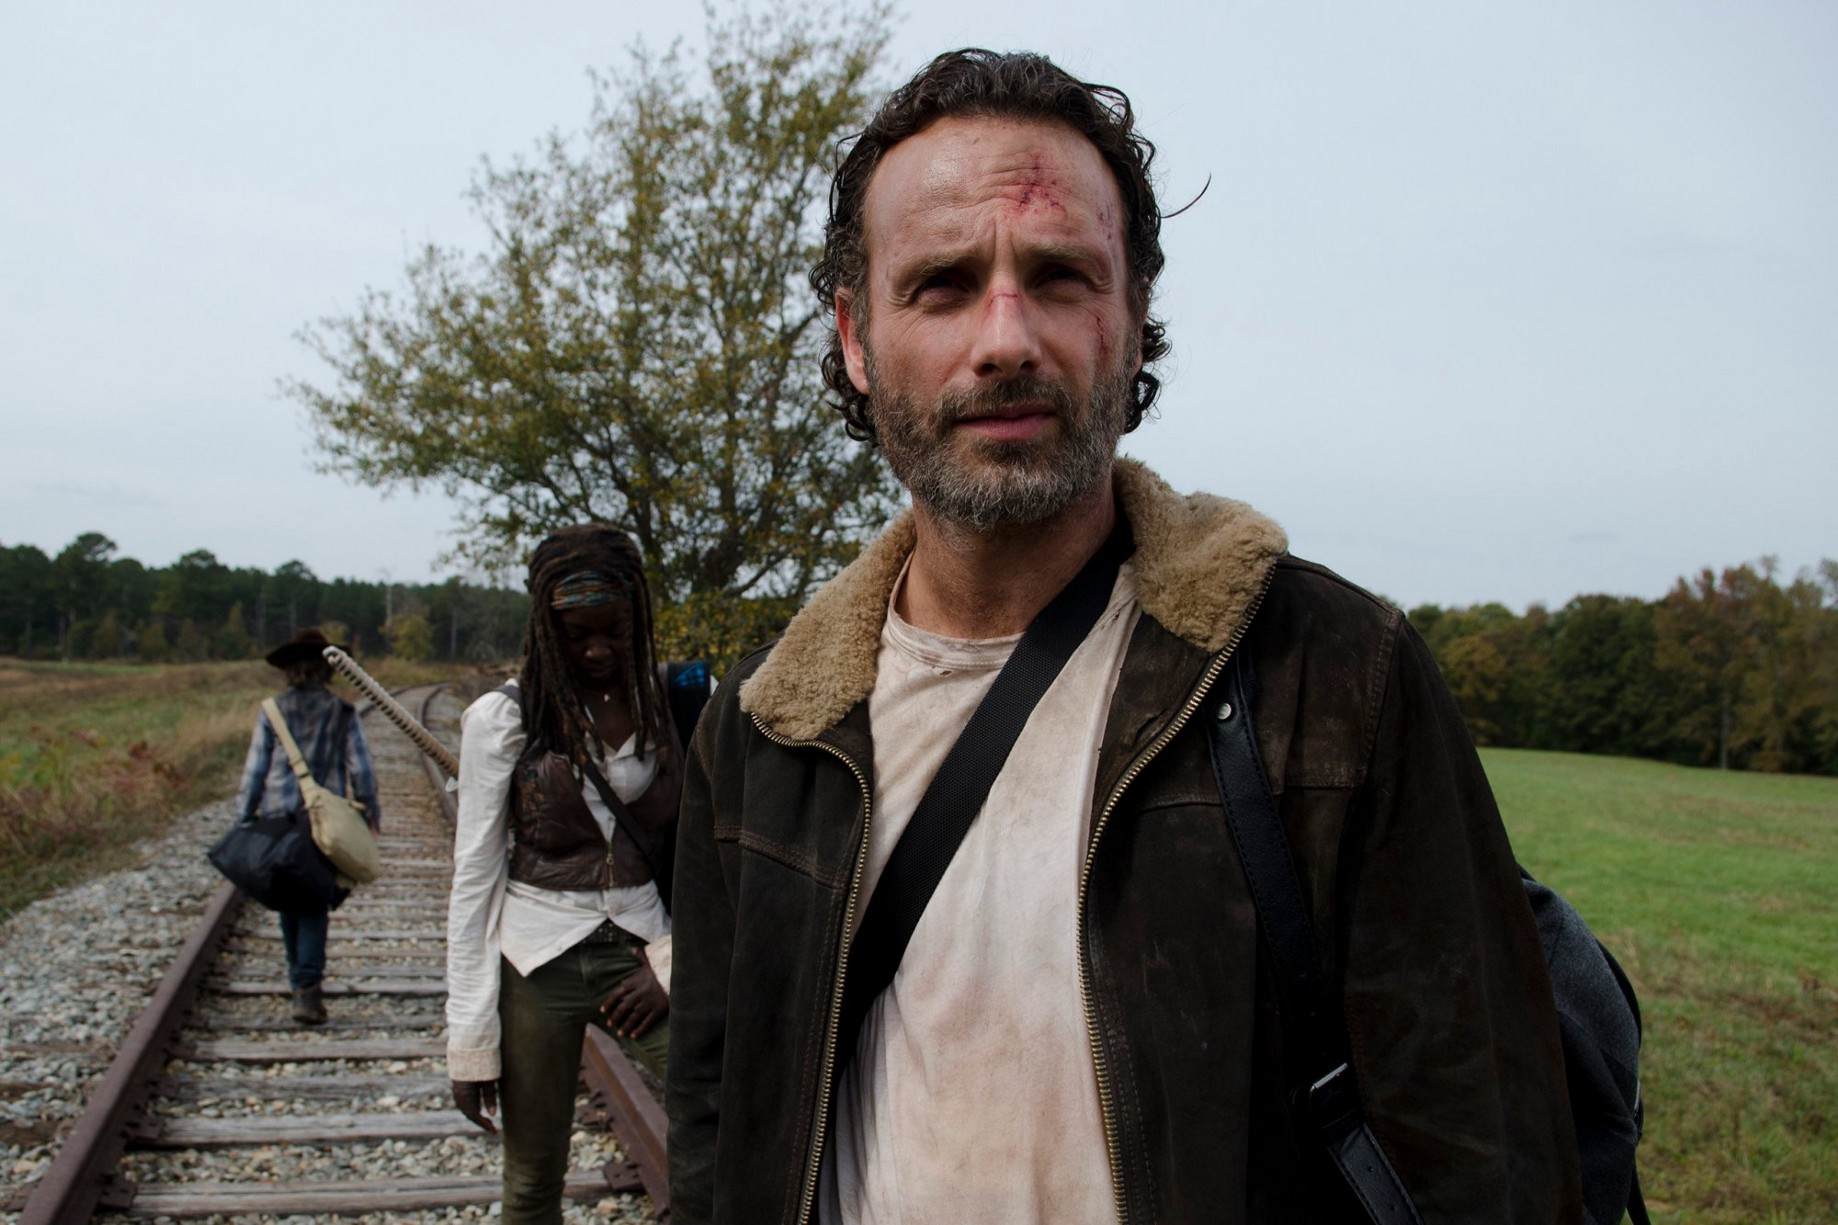 The Rick Grimes Guide to Leadership and Team Building